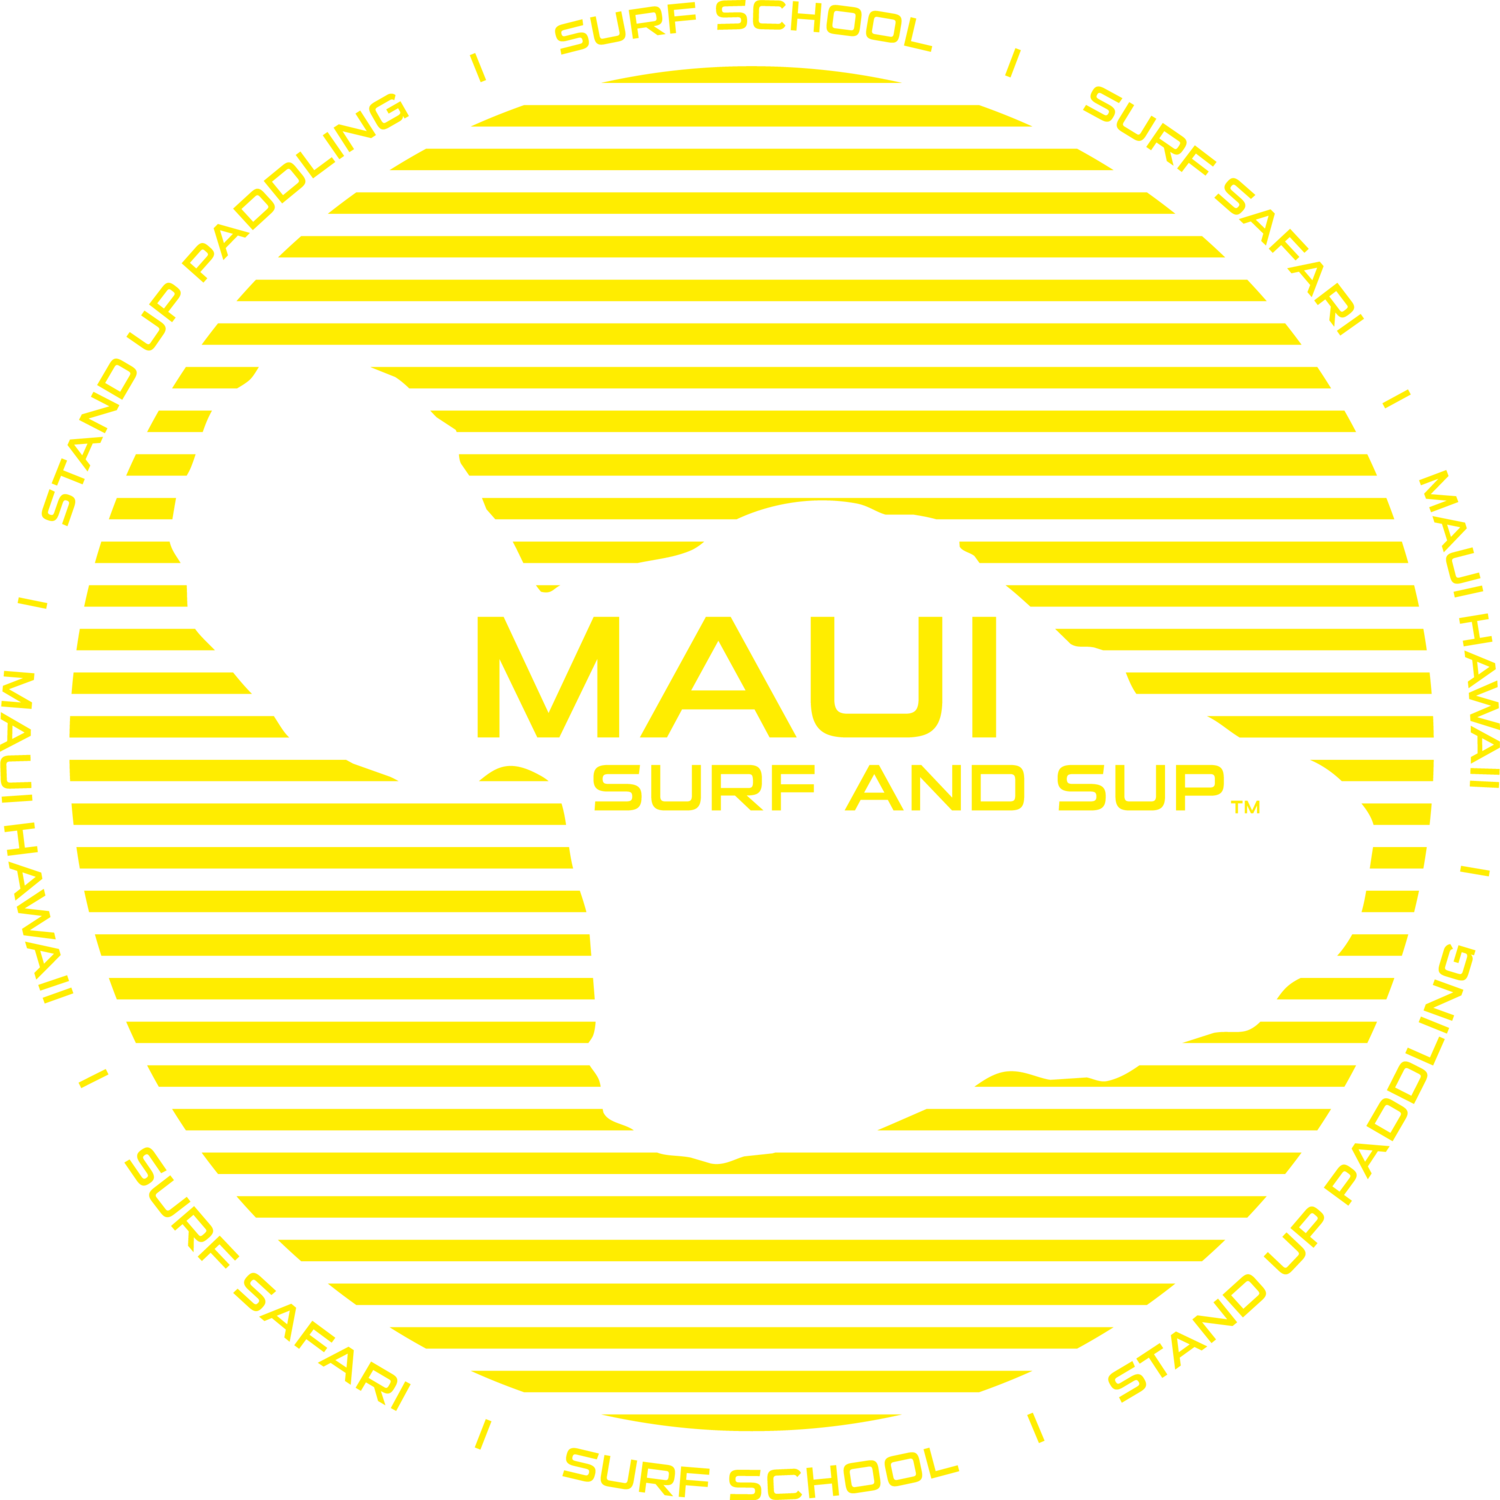 Maui Surf and SUP